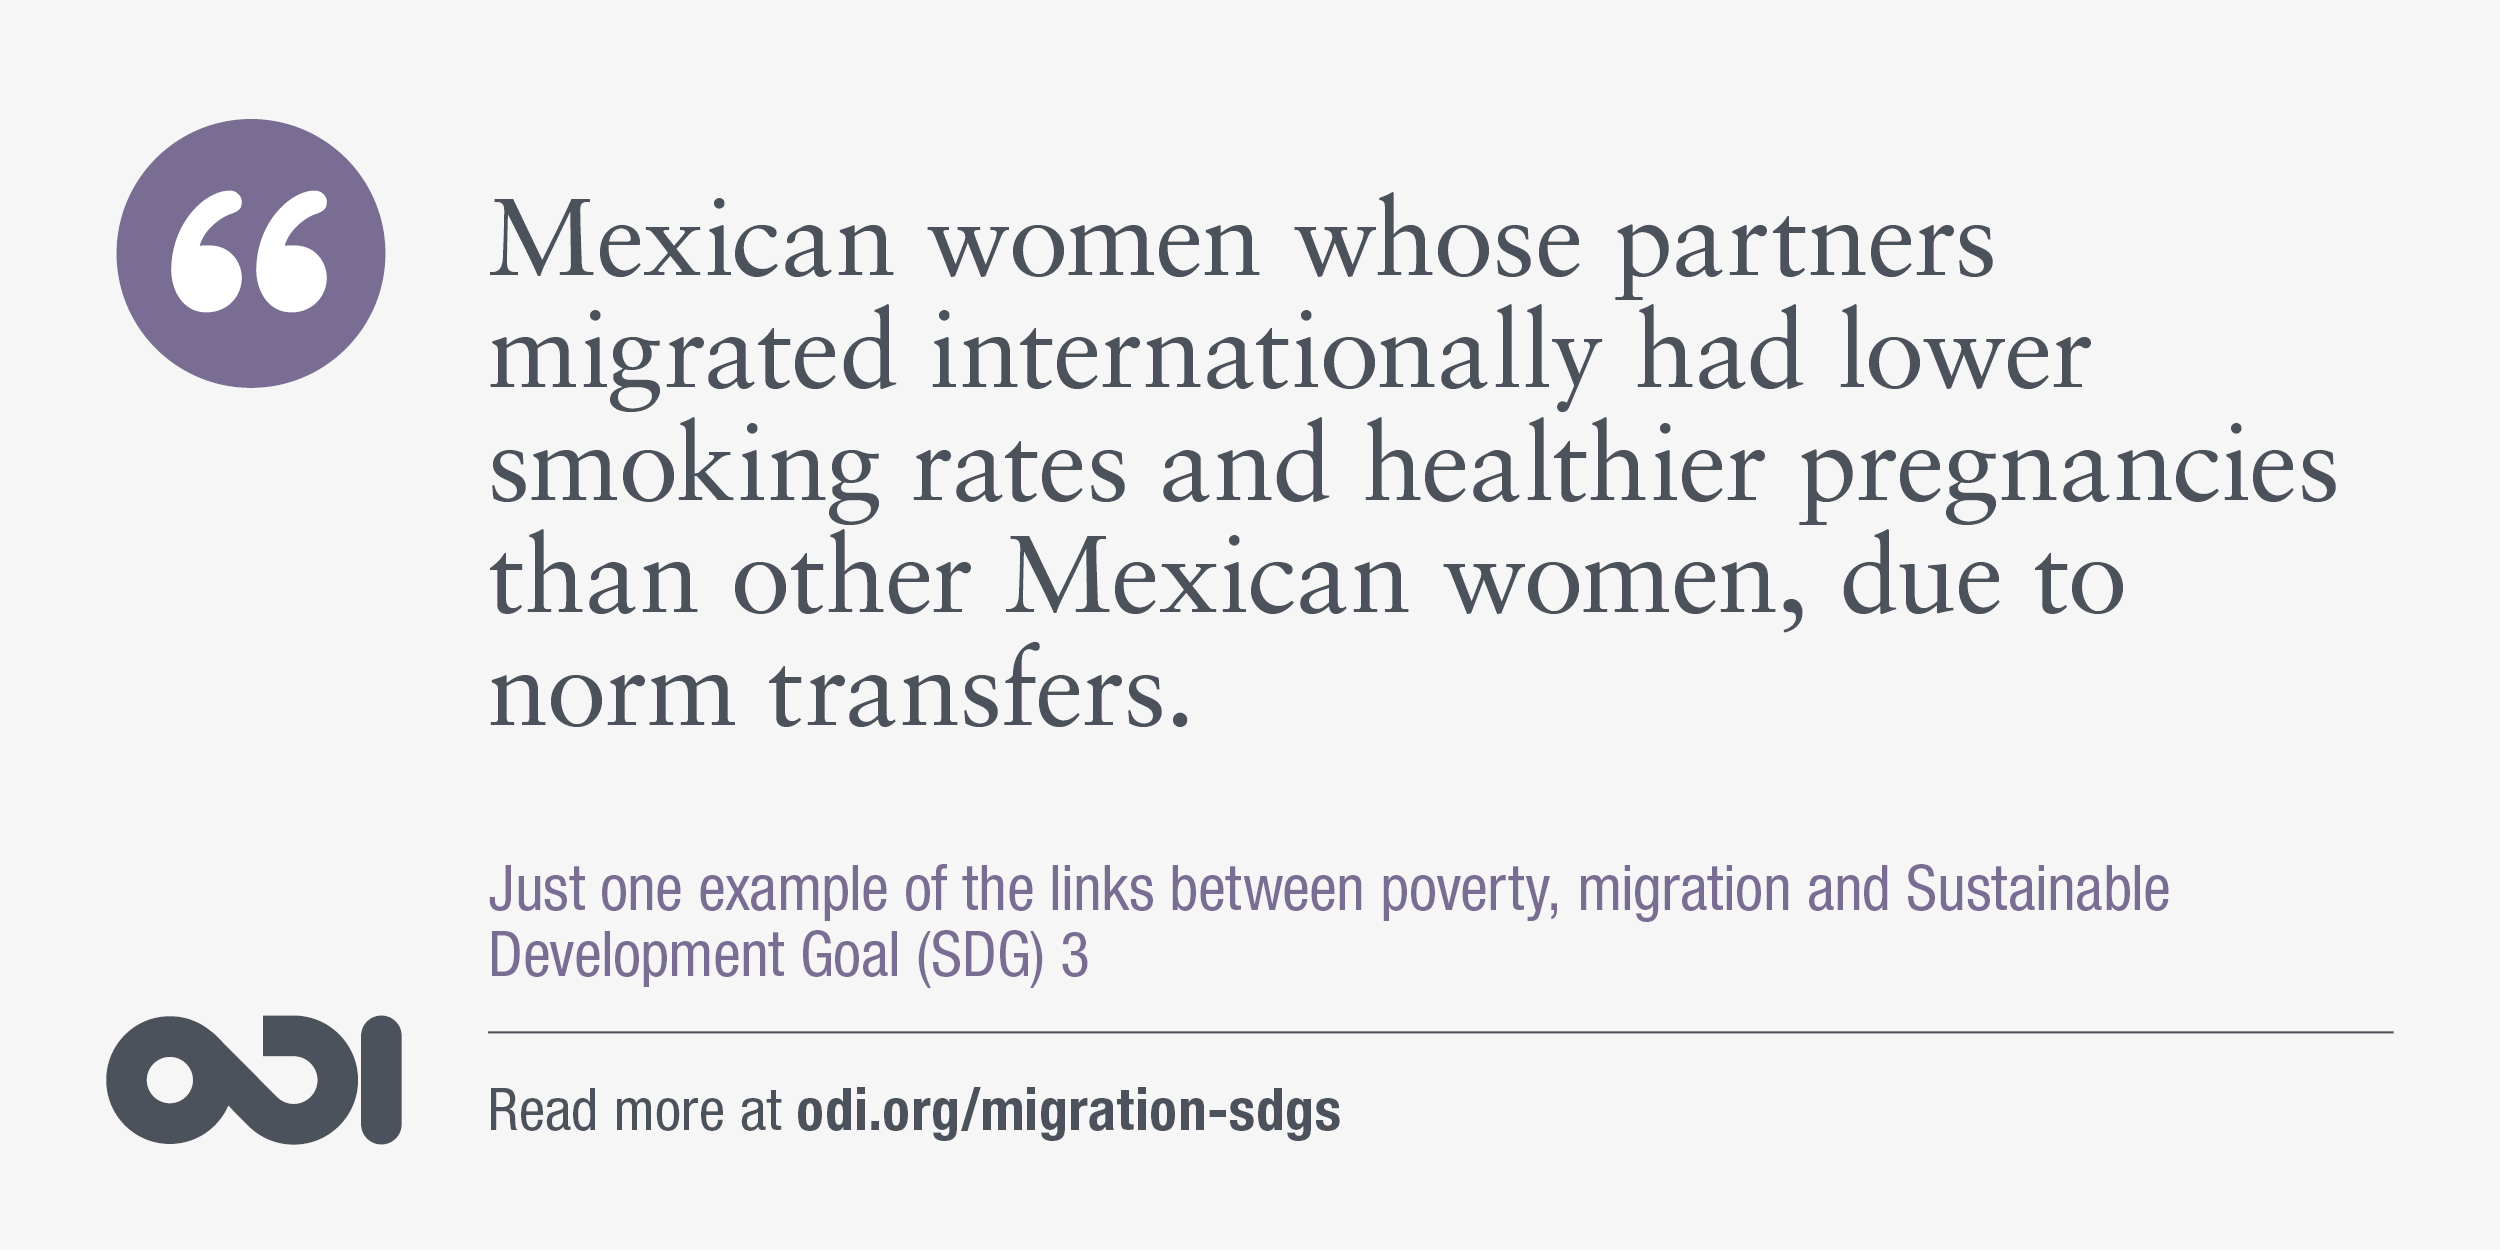 The links between poverty, migration and SDG 3.